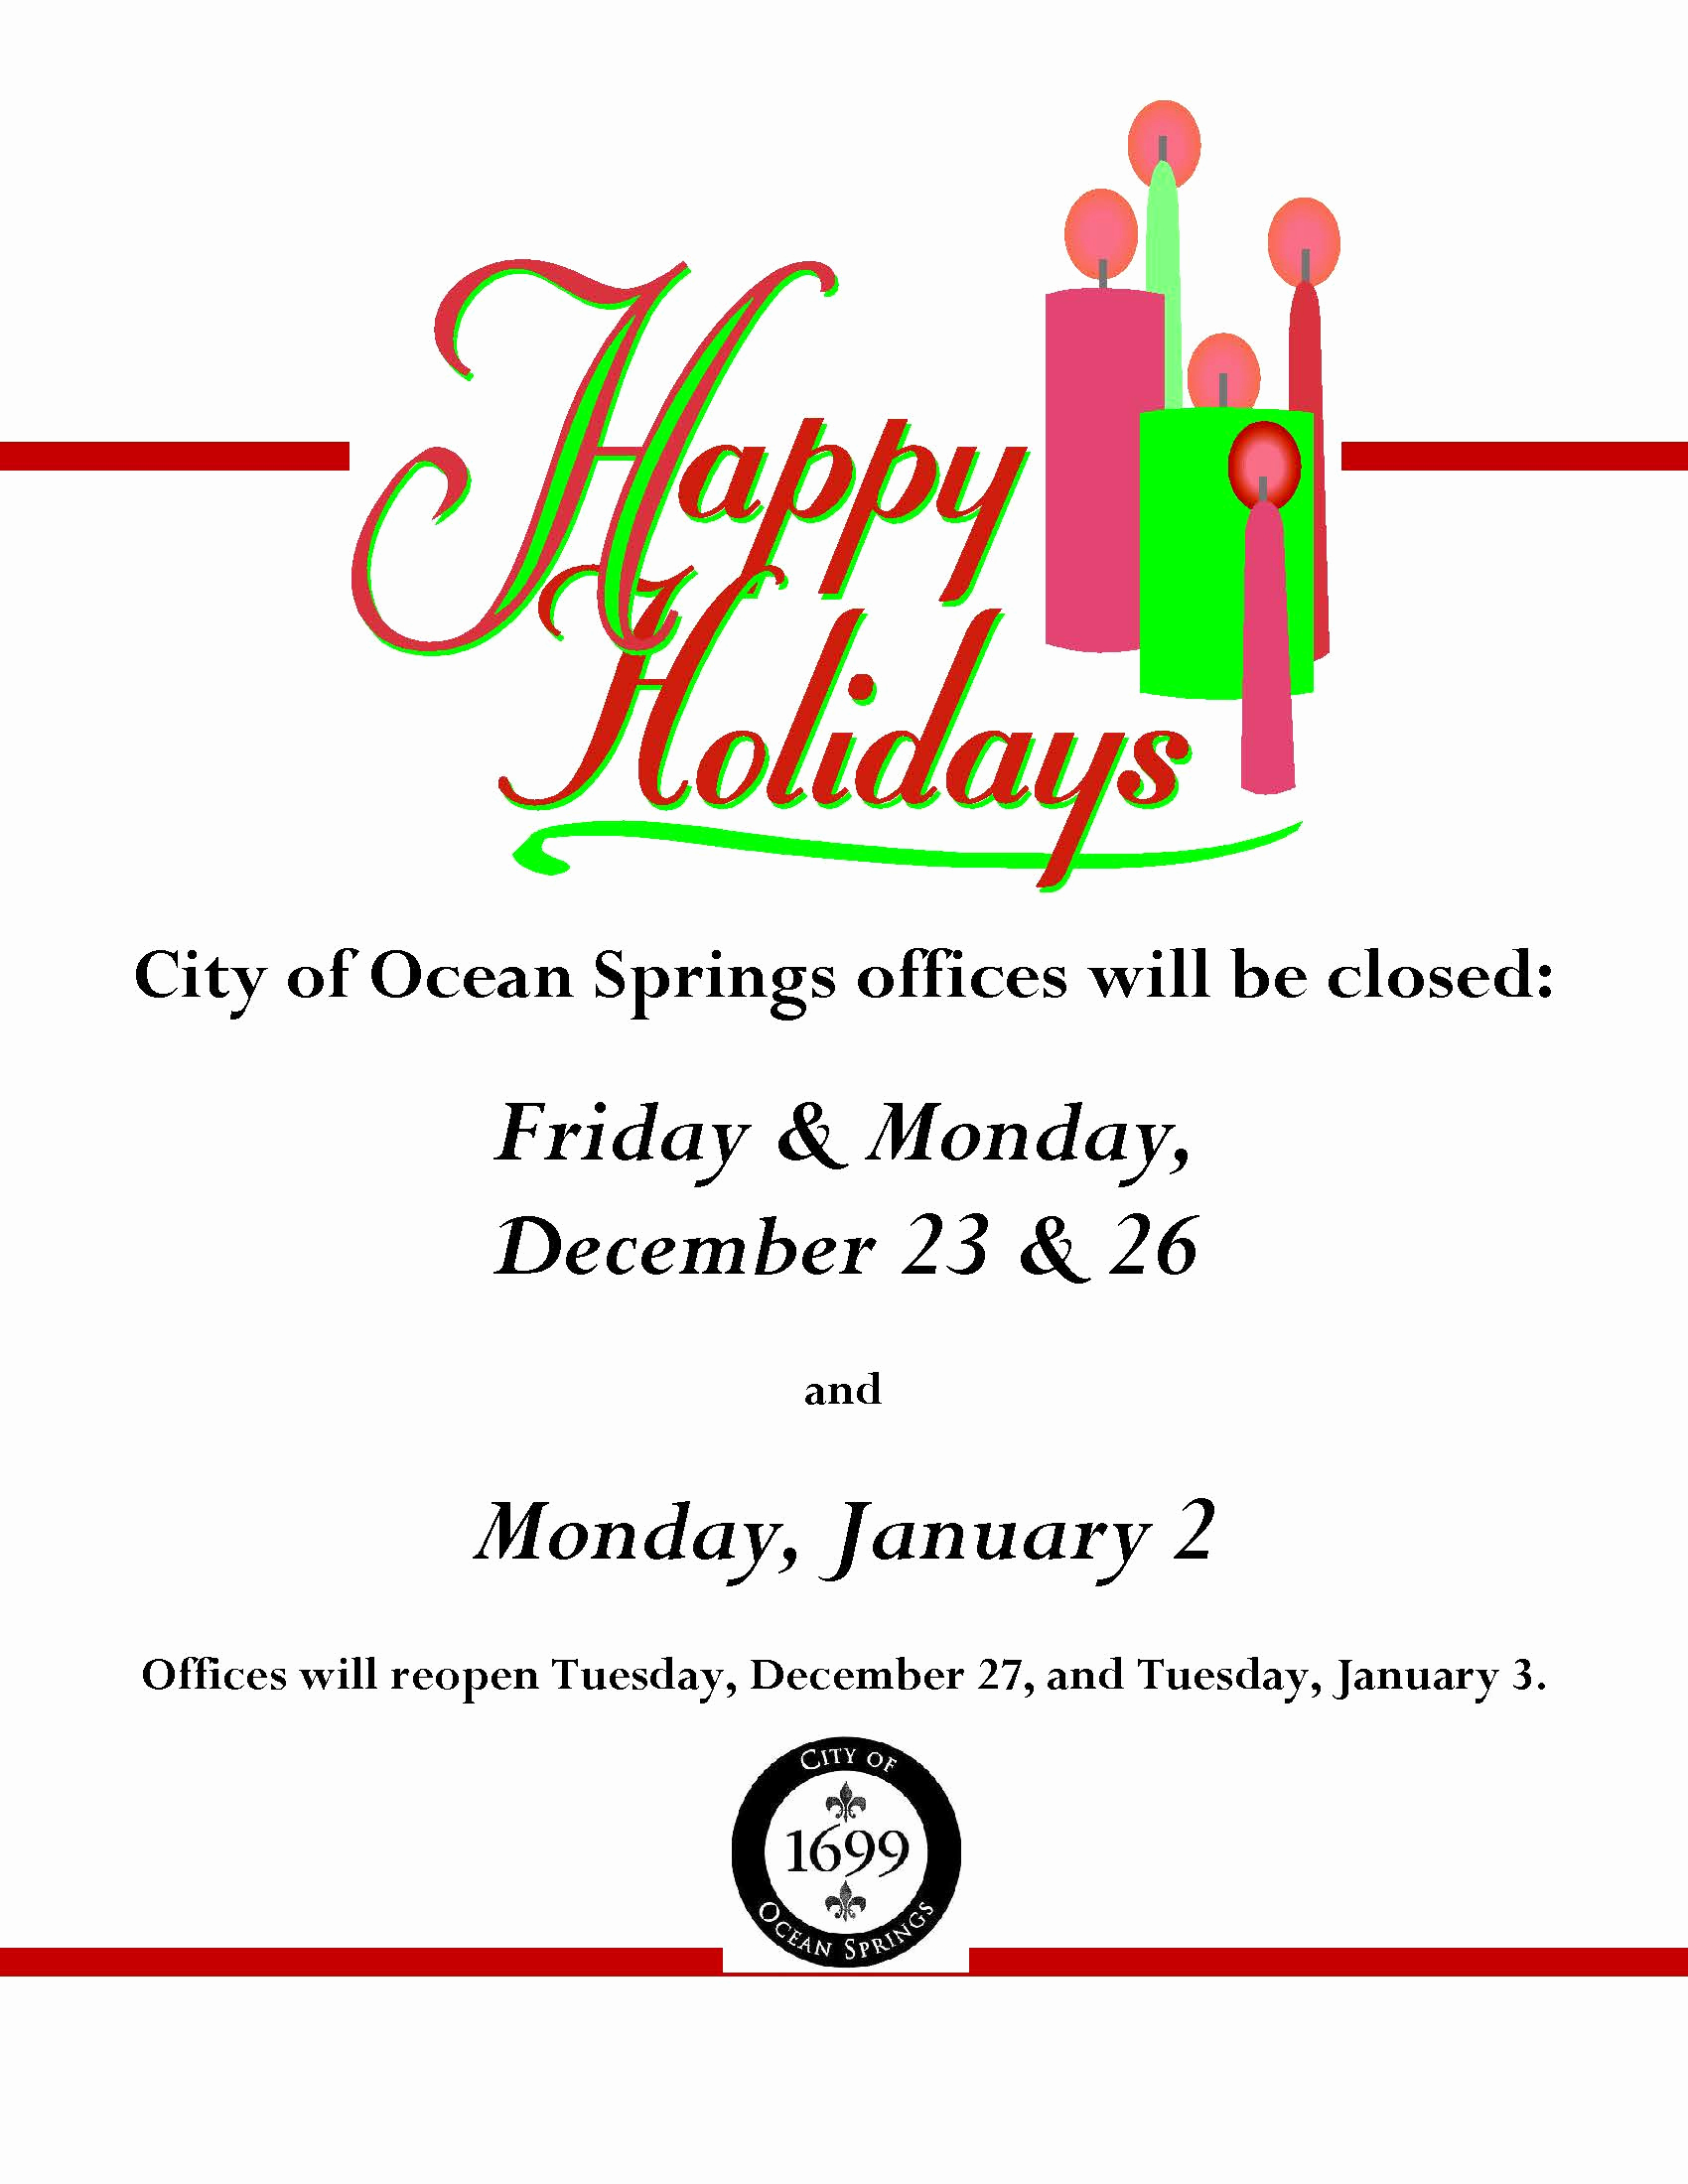 Holiday Closing Notice Template Beautiful Notice Fice Closure Dates for Holidays